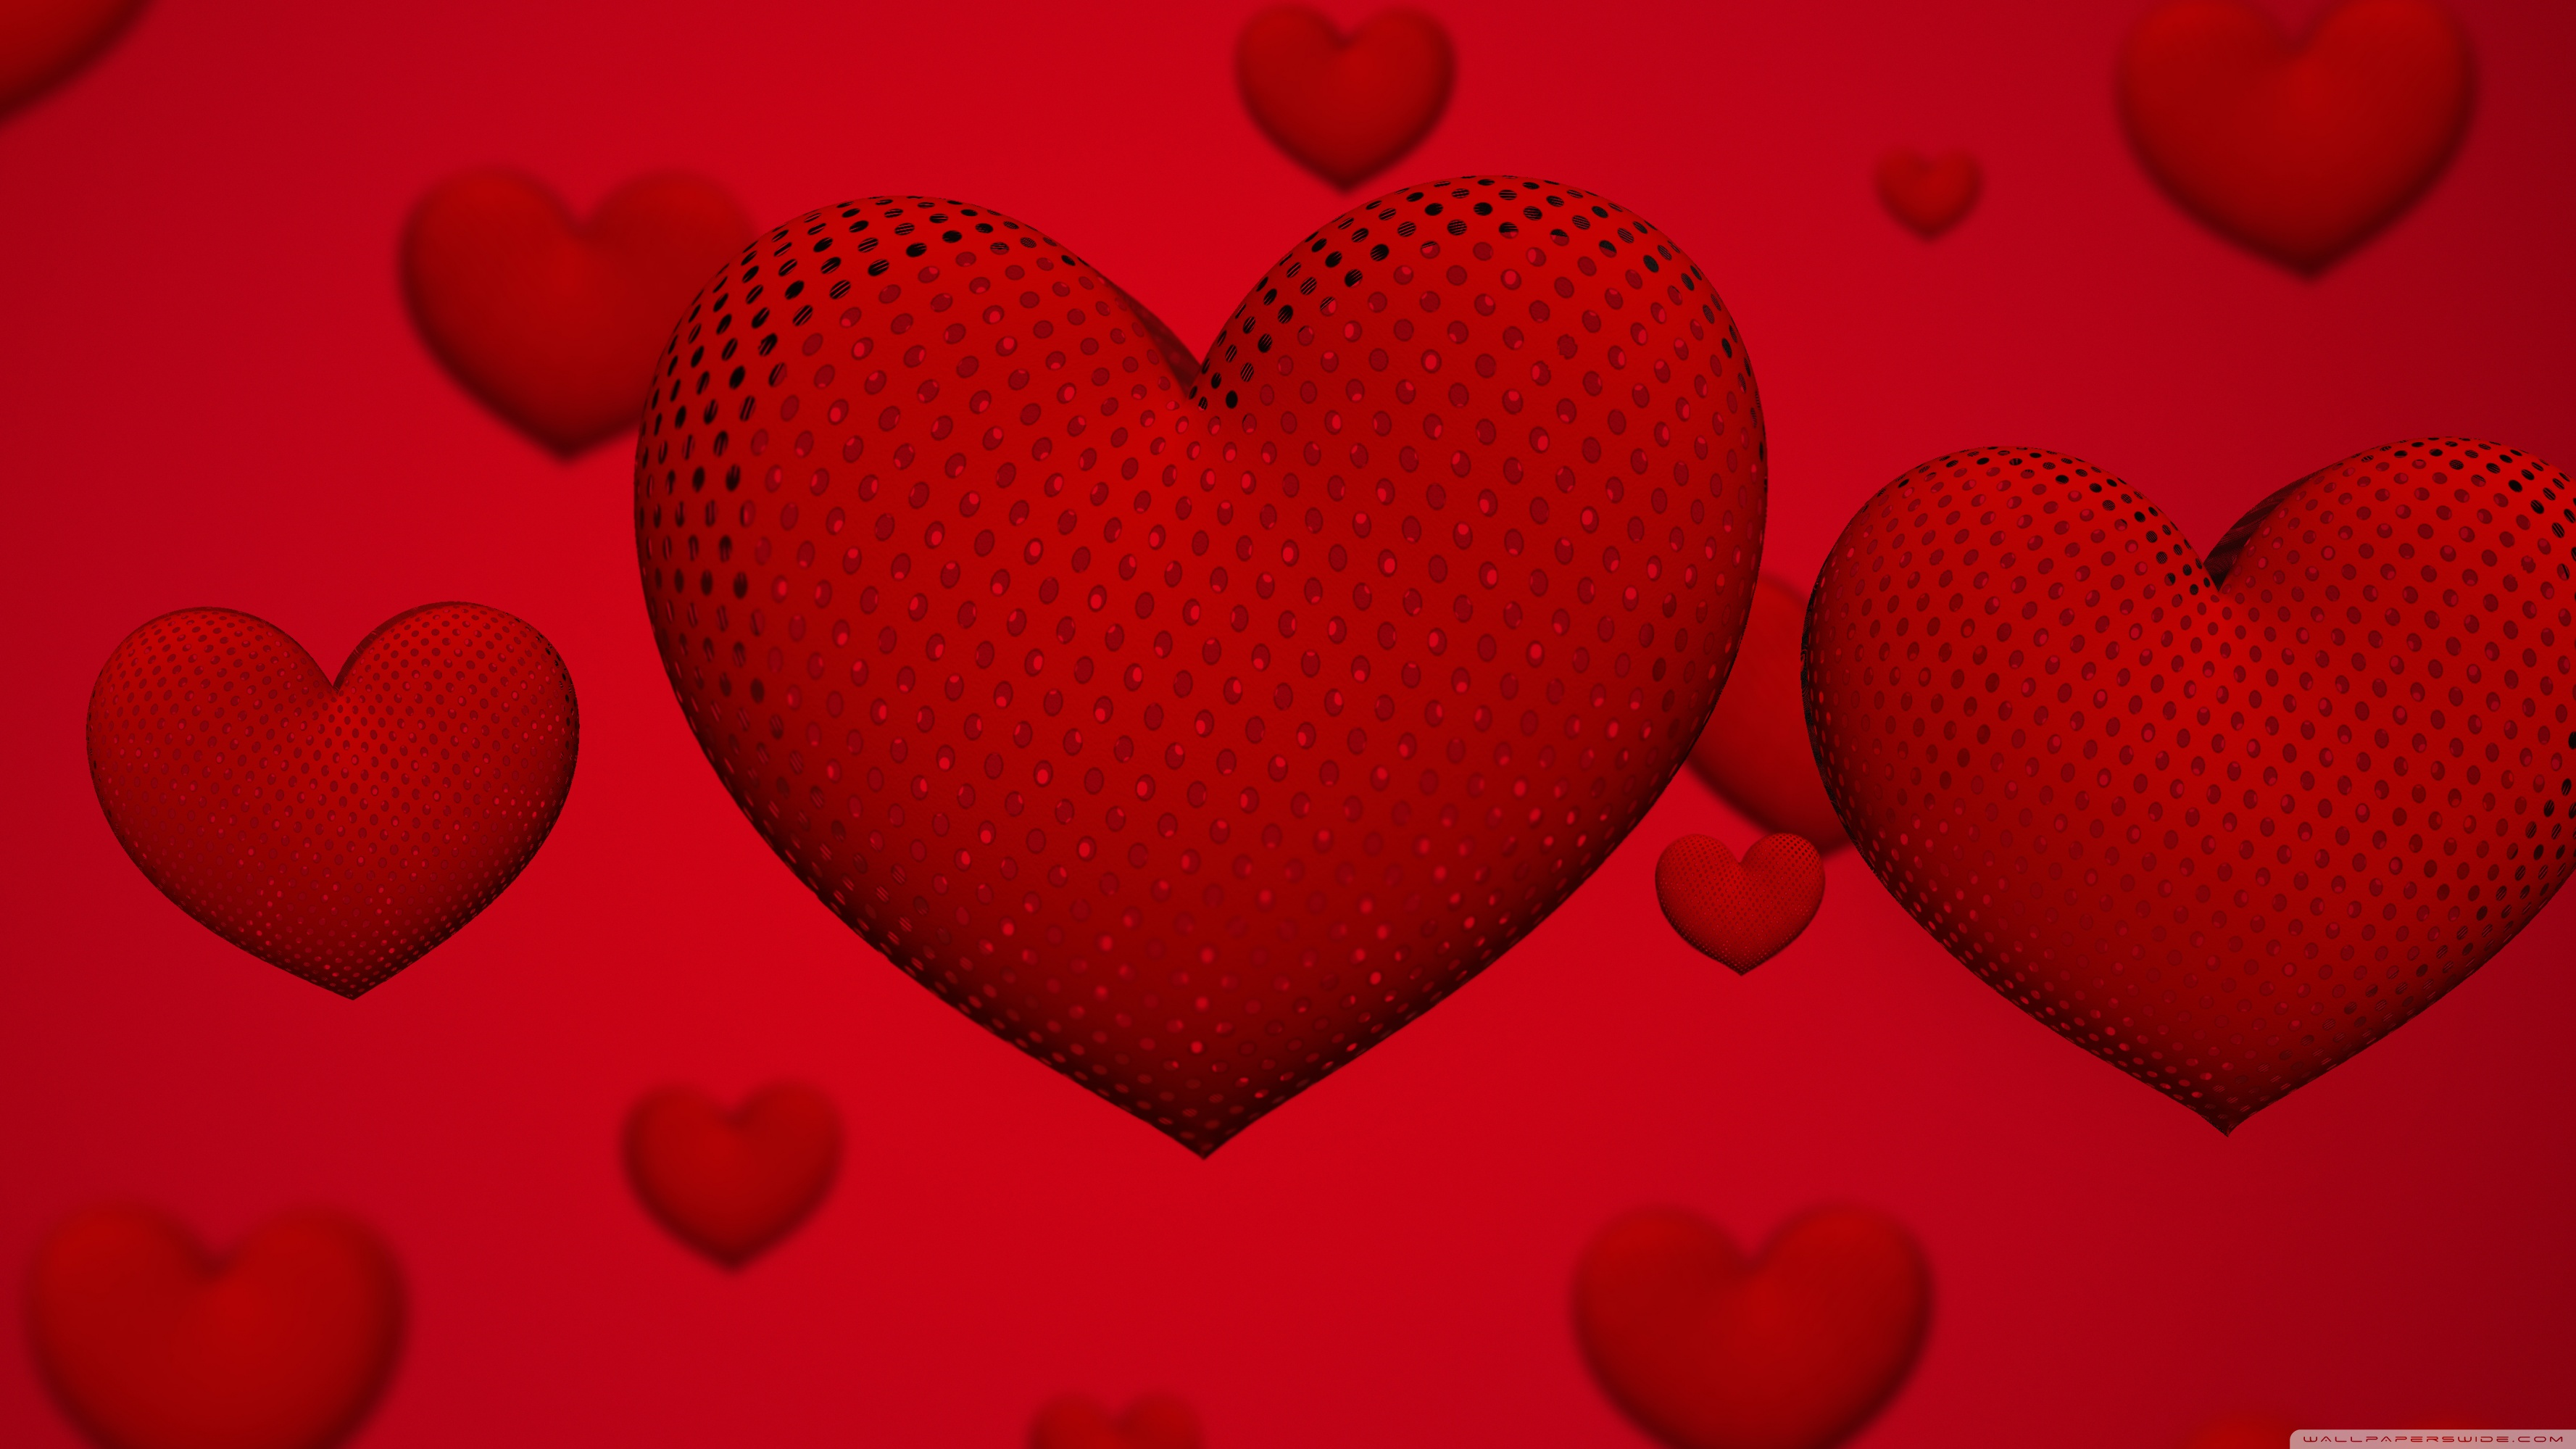 Valentine's Day Hearts Ultra HD Desktop Backgrounds Wallpapers for